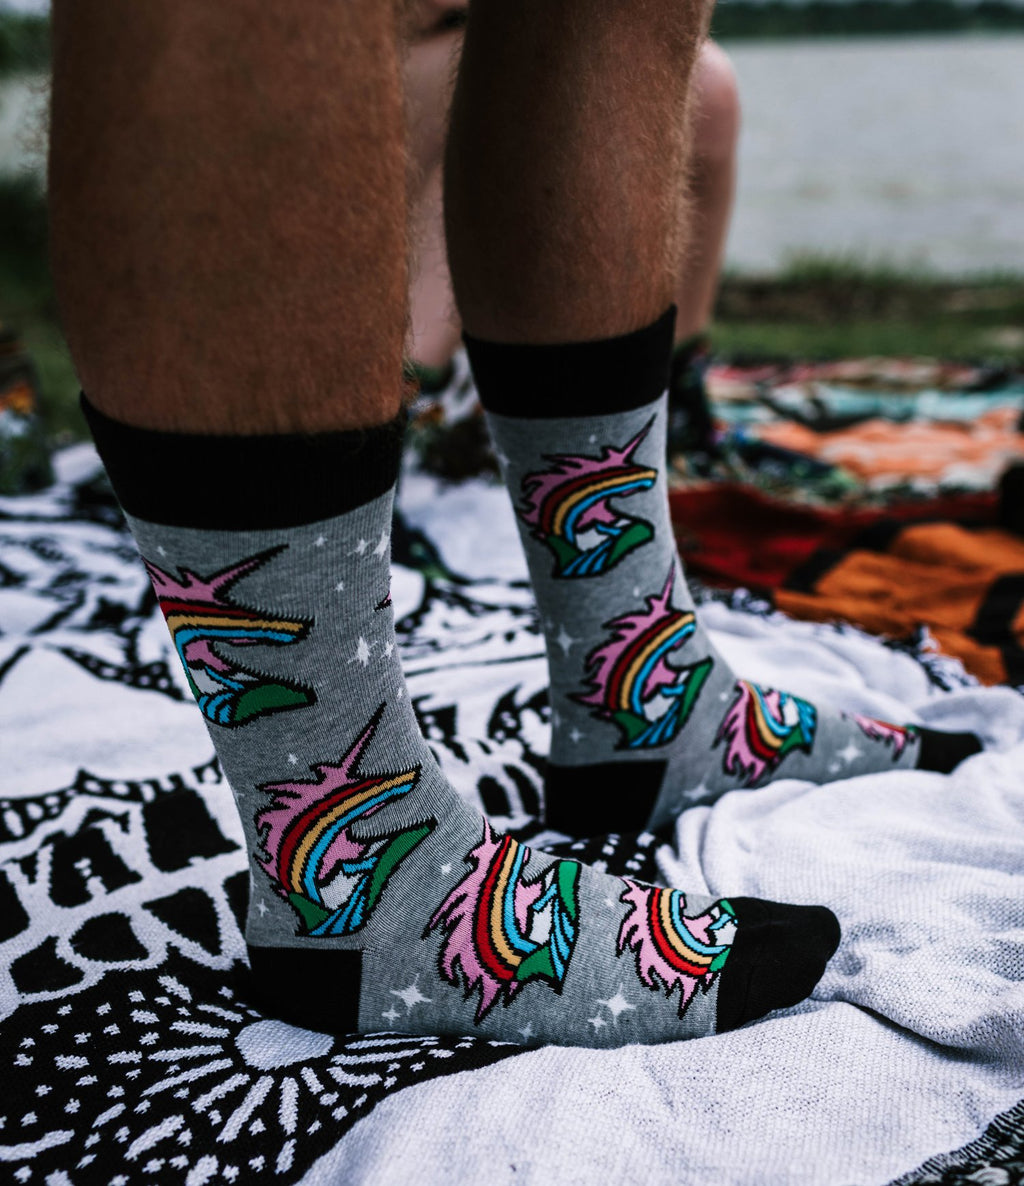 Atomicchild Men's Casual Socks - Unicorn